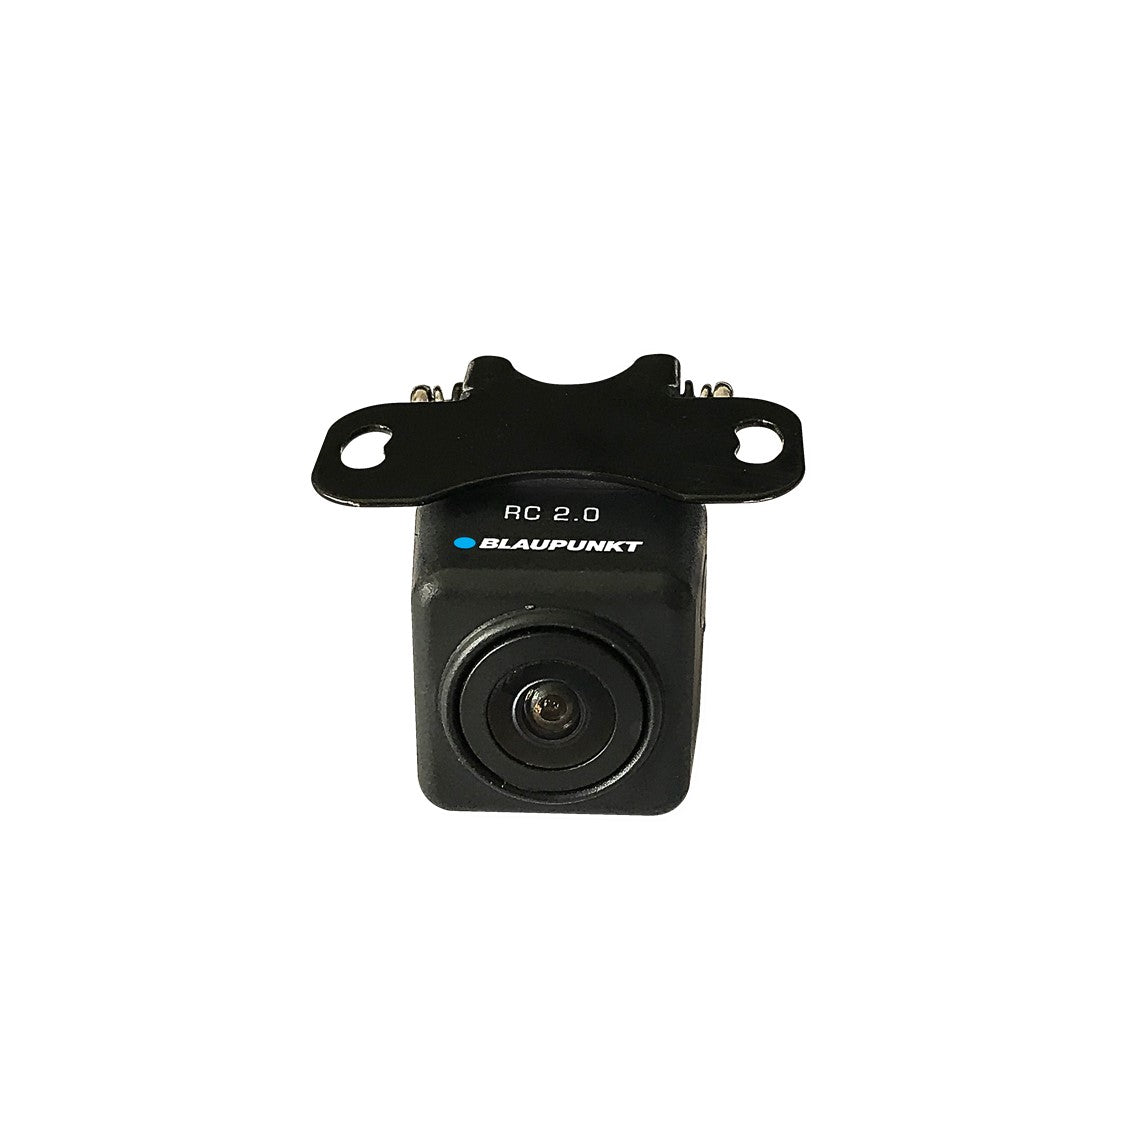 Blaupunkt RC 2.0 170° Ultra Wide CMOS Sensor Universal Car Rear View Camera - Xcite Audio